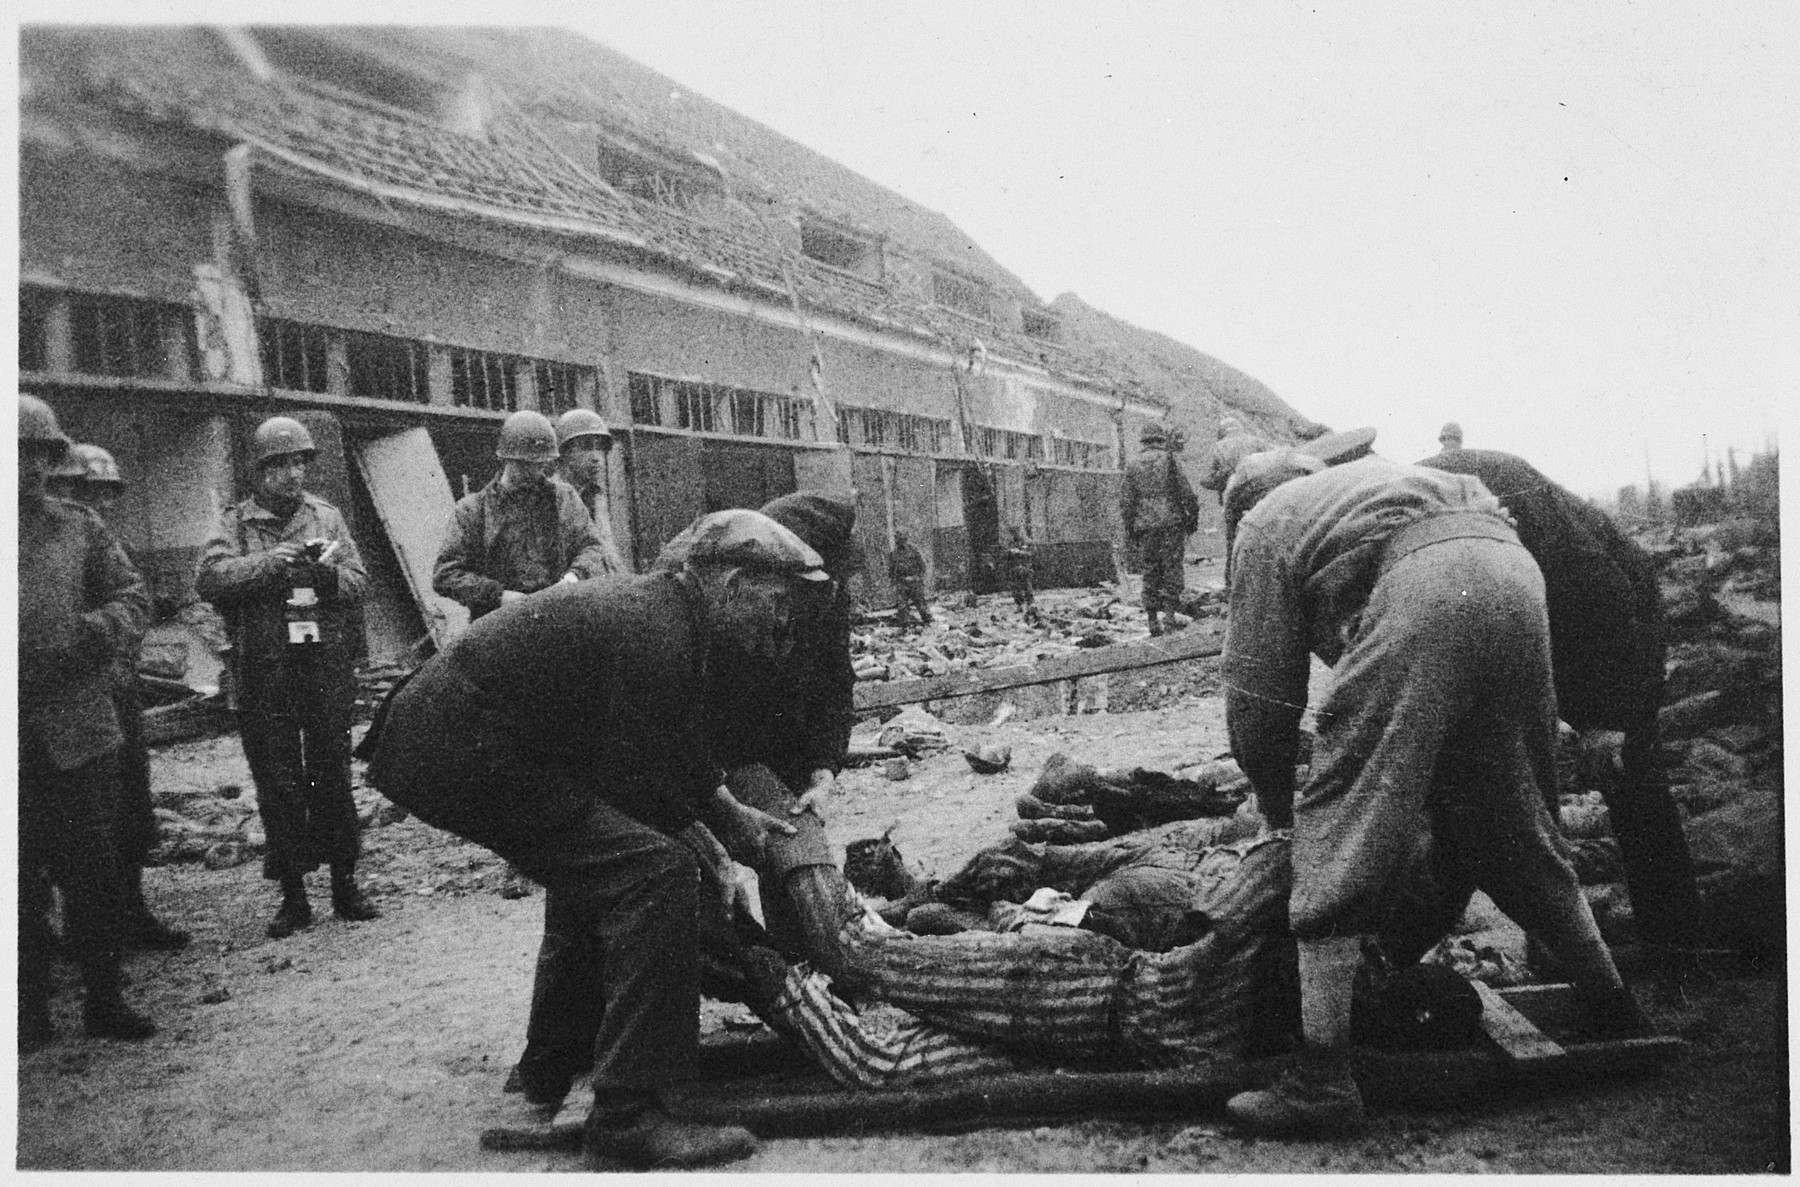 American soldiers oversee German civilians forced to clear away corpses in the Nordhausen concentration camp.